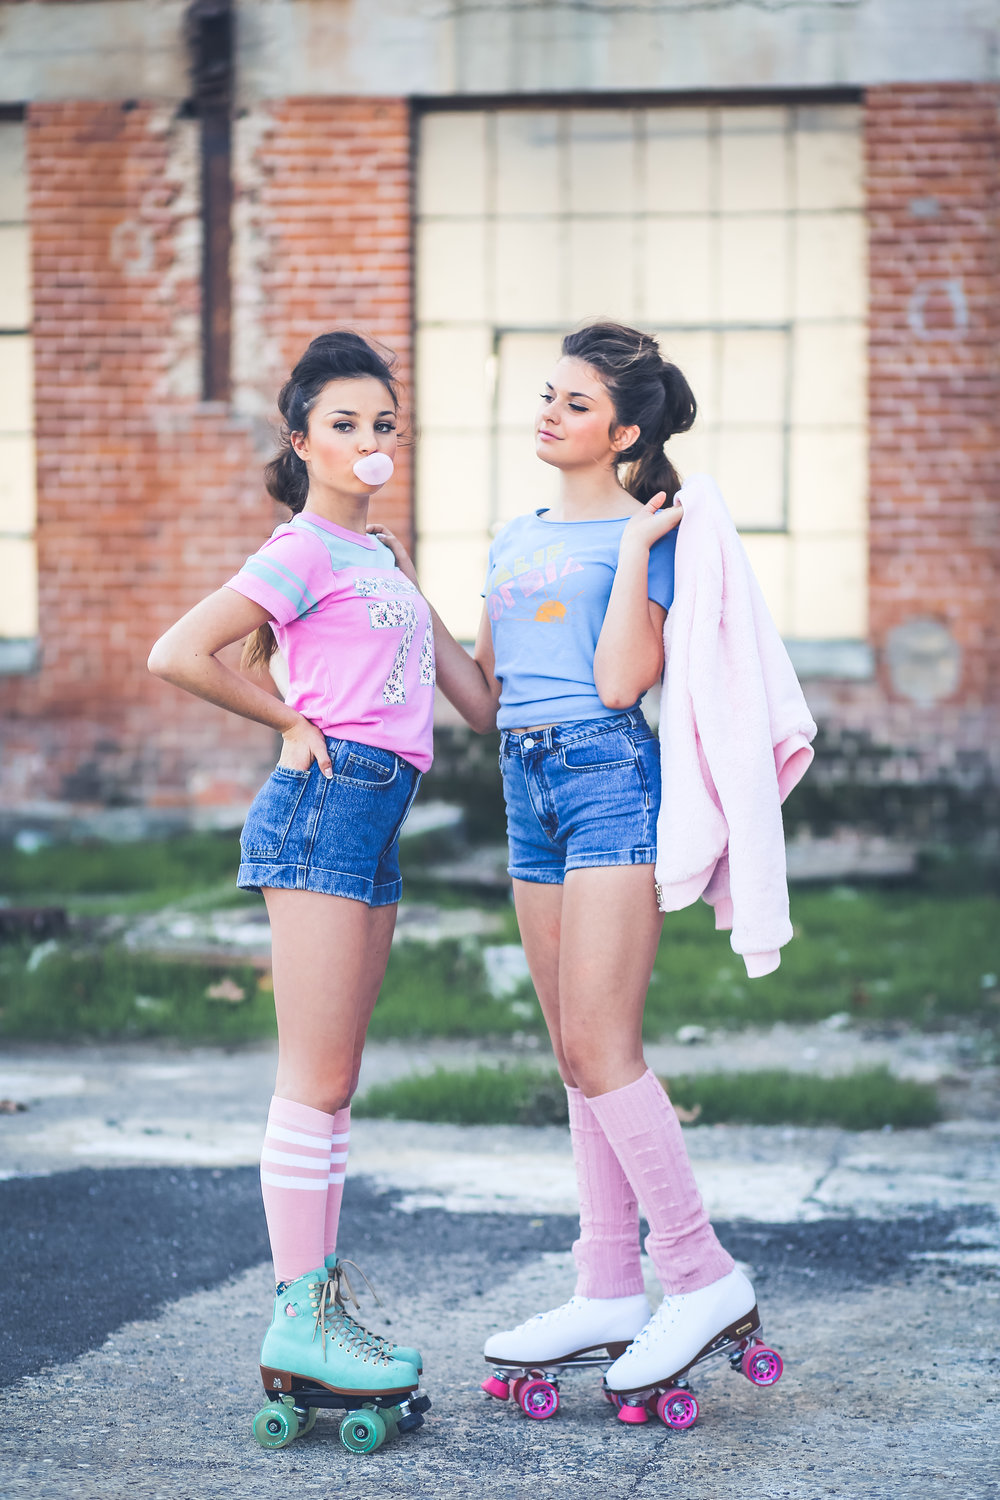 Roller skating babies - Some Of My Favorite Images From This Rad 80 S Inspired Shoot